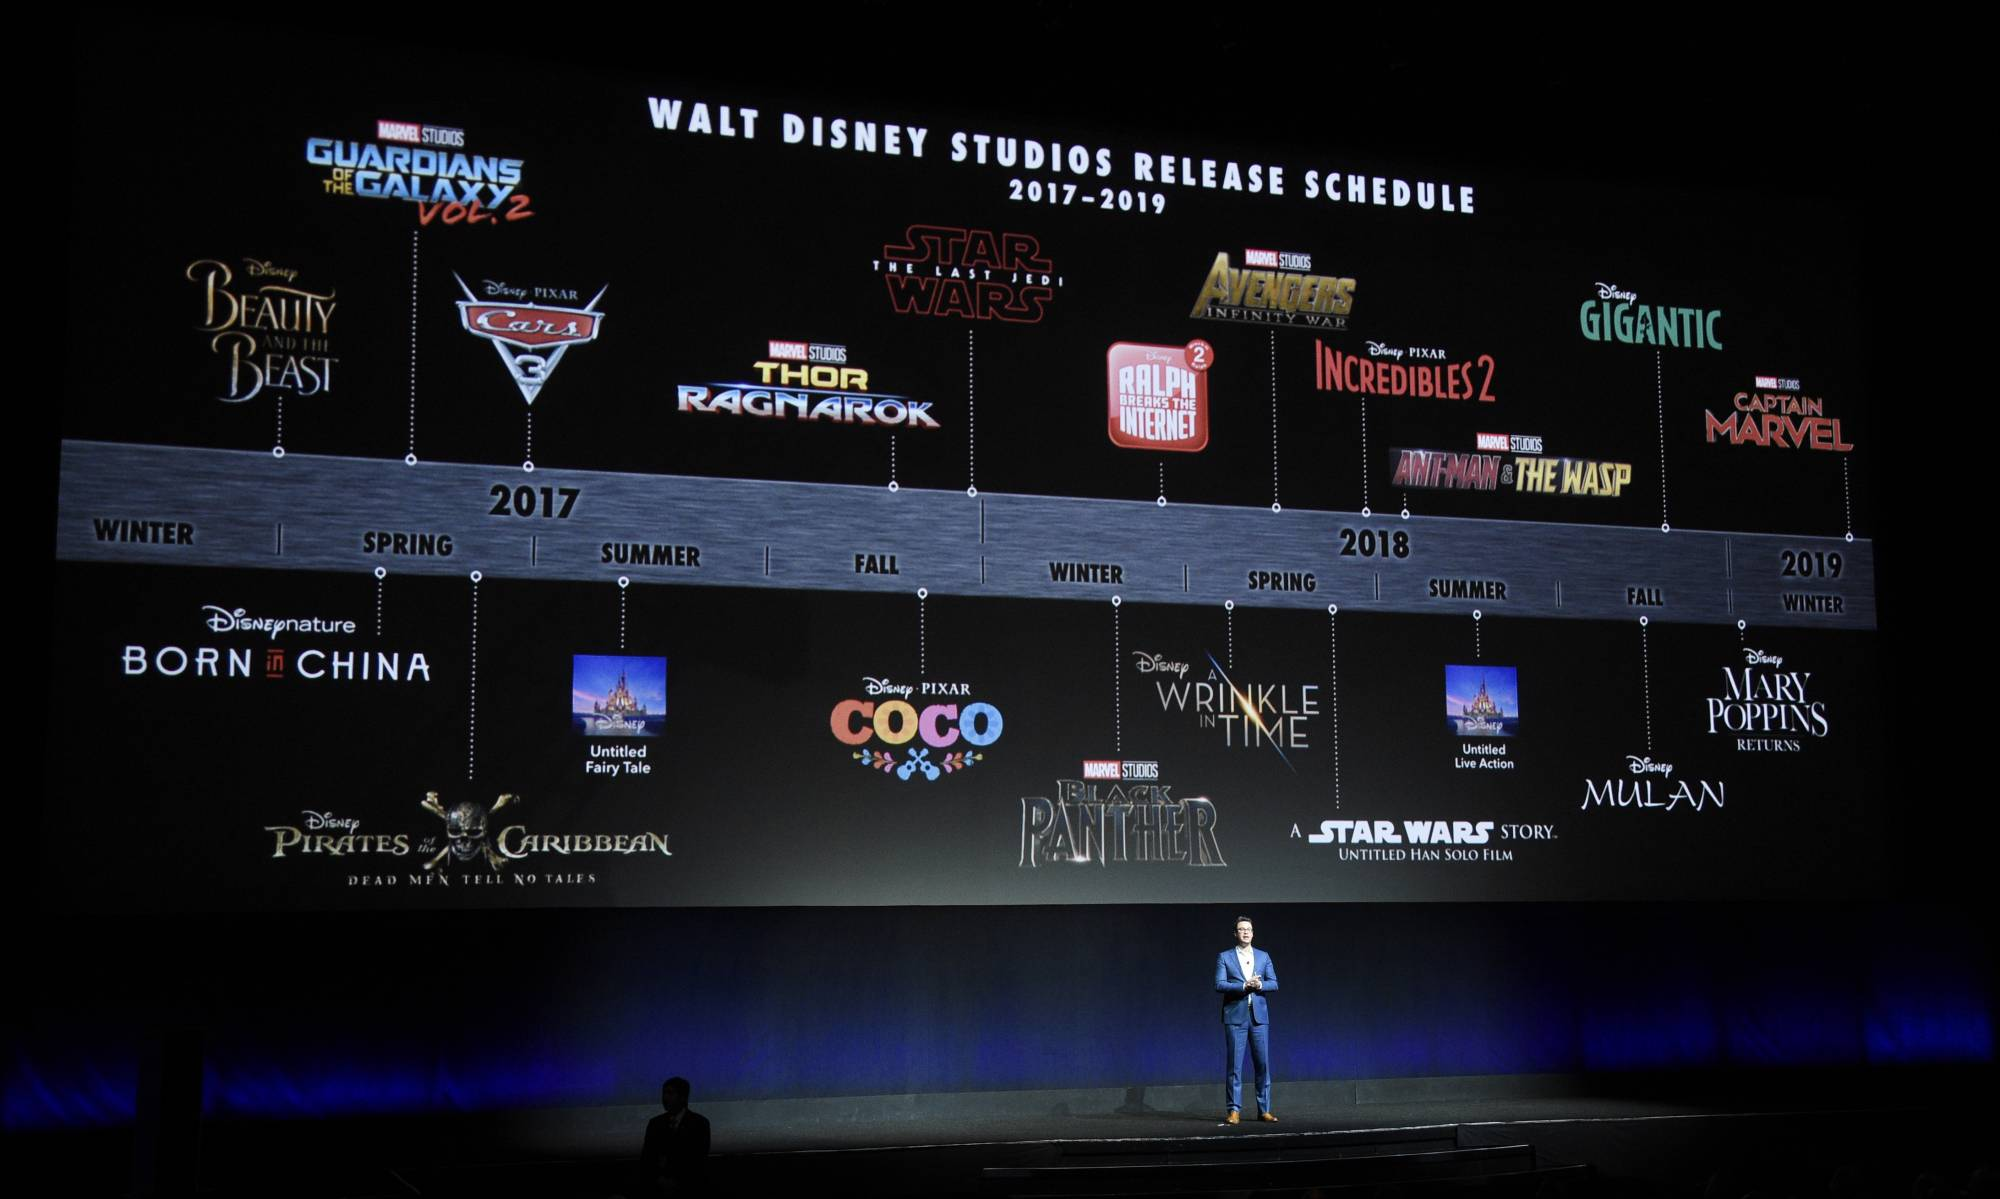 Disney's presentation graphic featuring logos of their upcoming movies